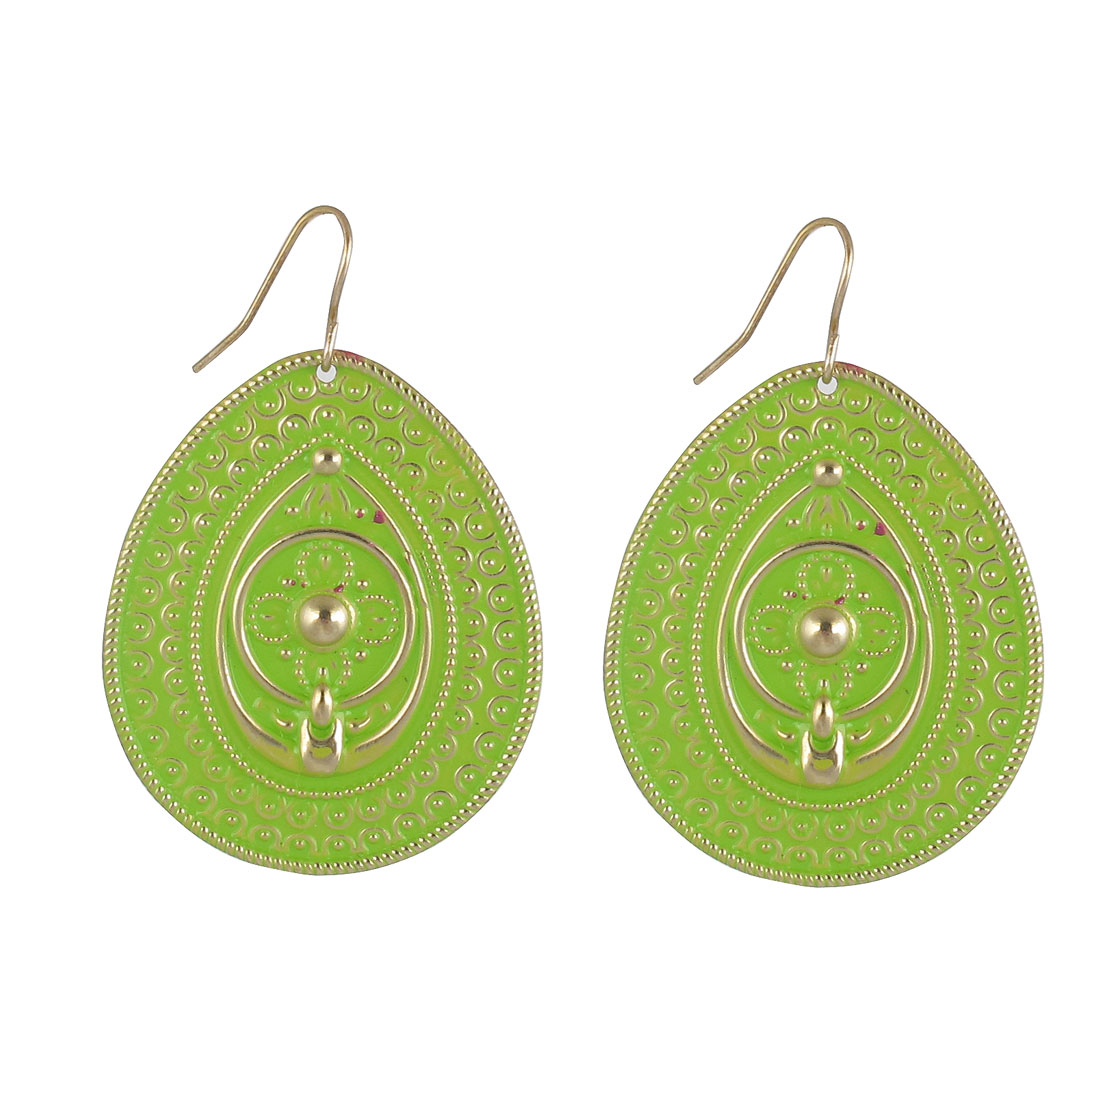 "Lady Women Metal Oval Shape Filled Structure Dangling Pendant Hook Earrings Earbobs Bright Green Copper Tone 2"" Length Pair"